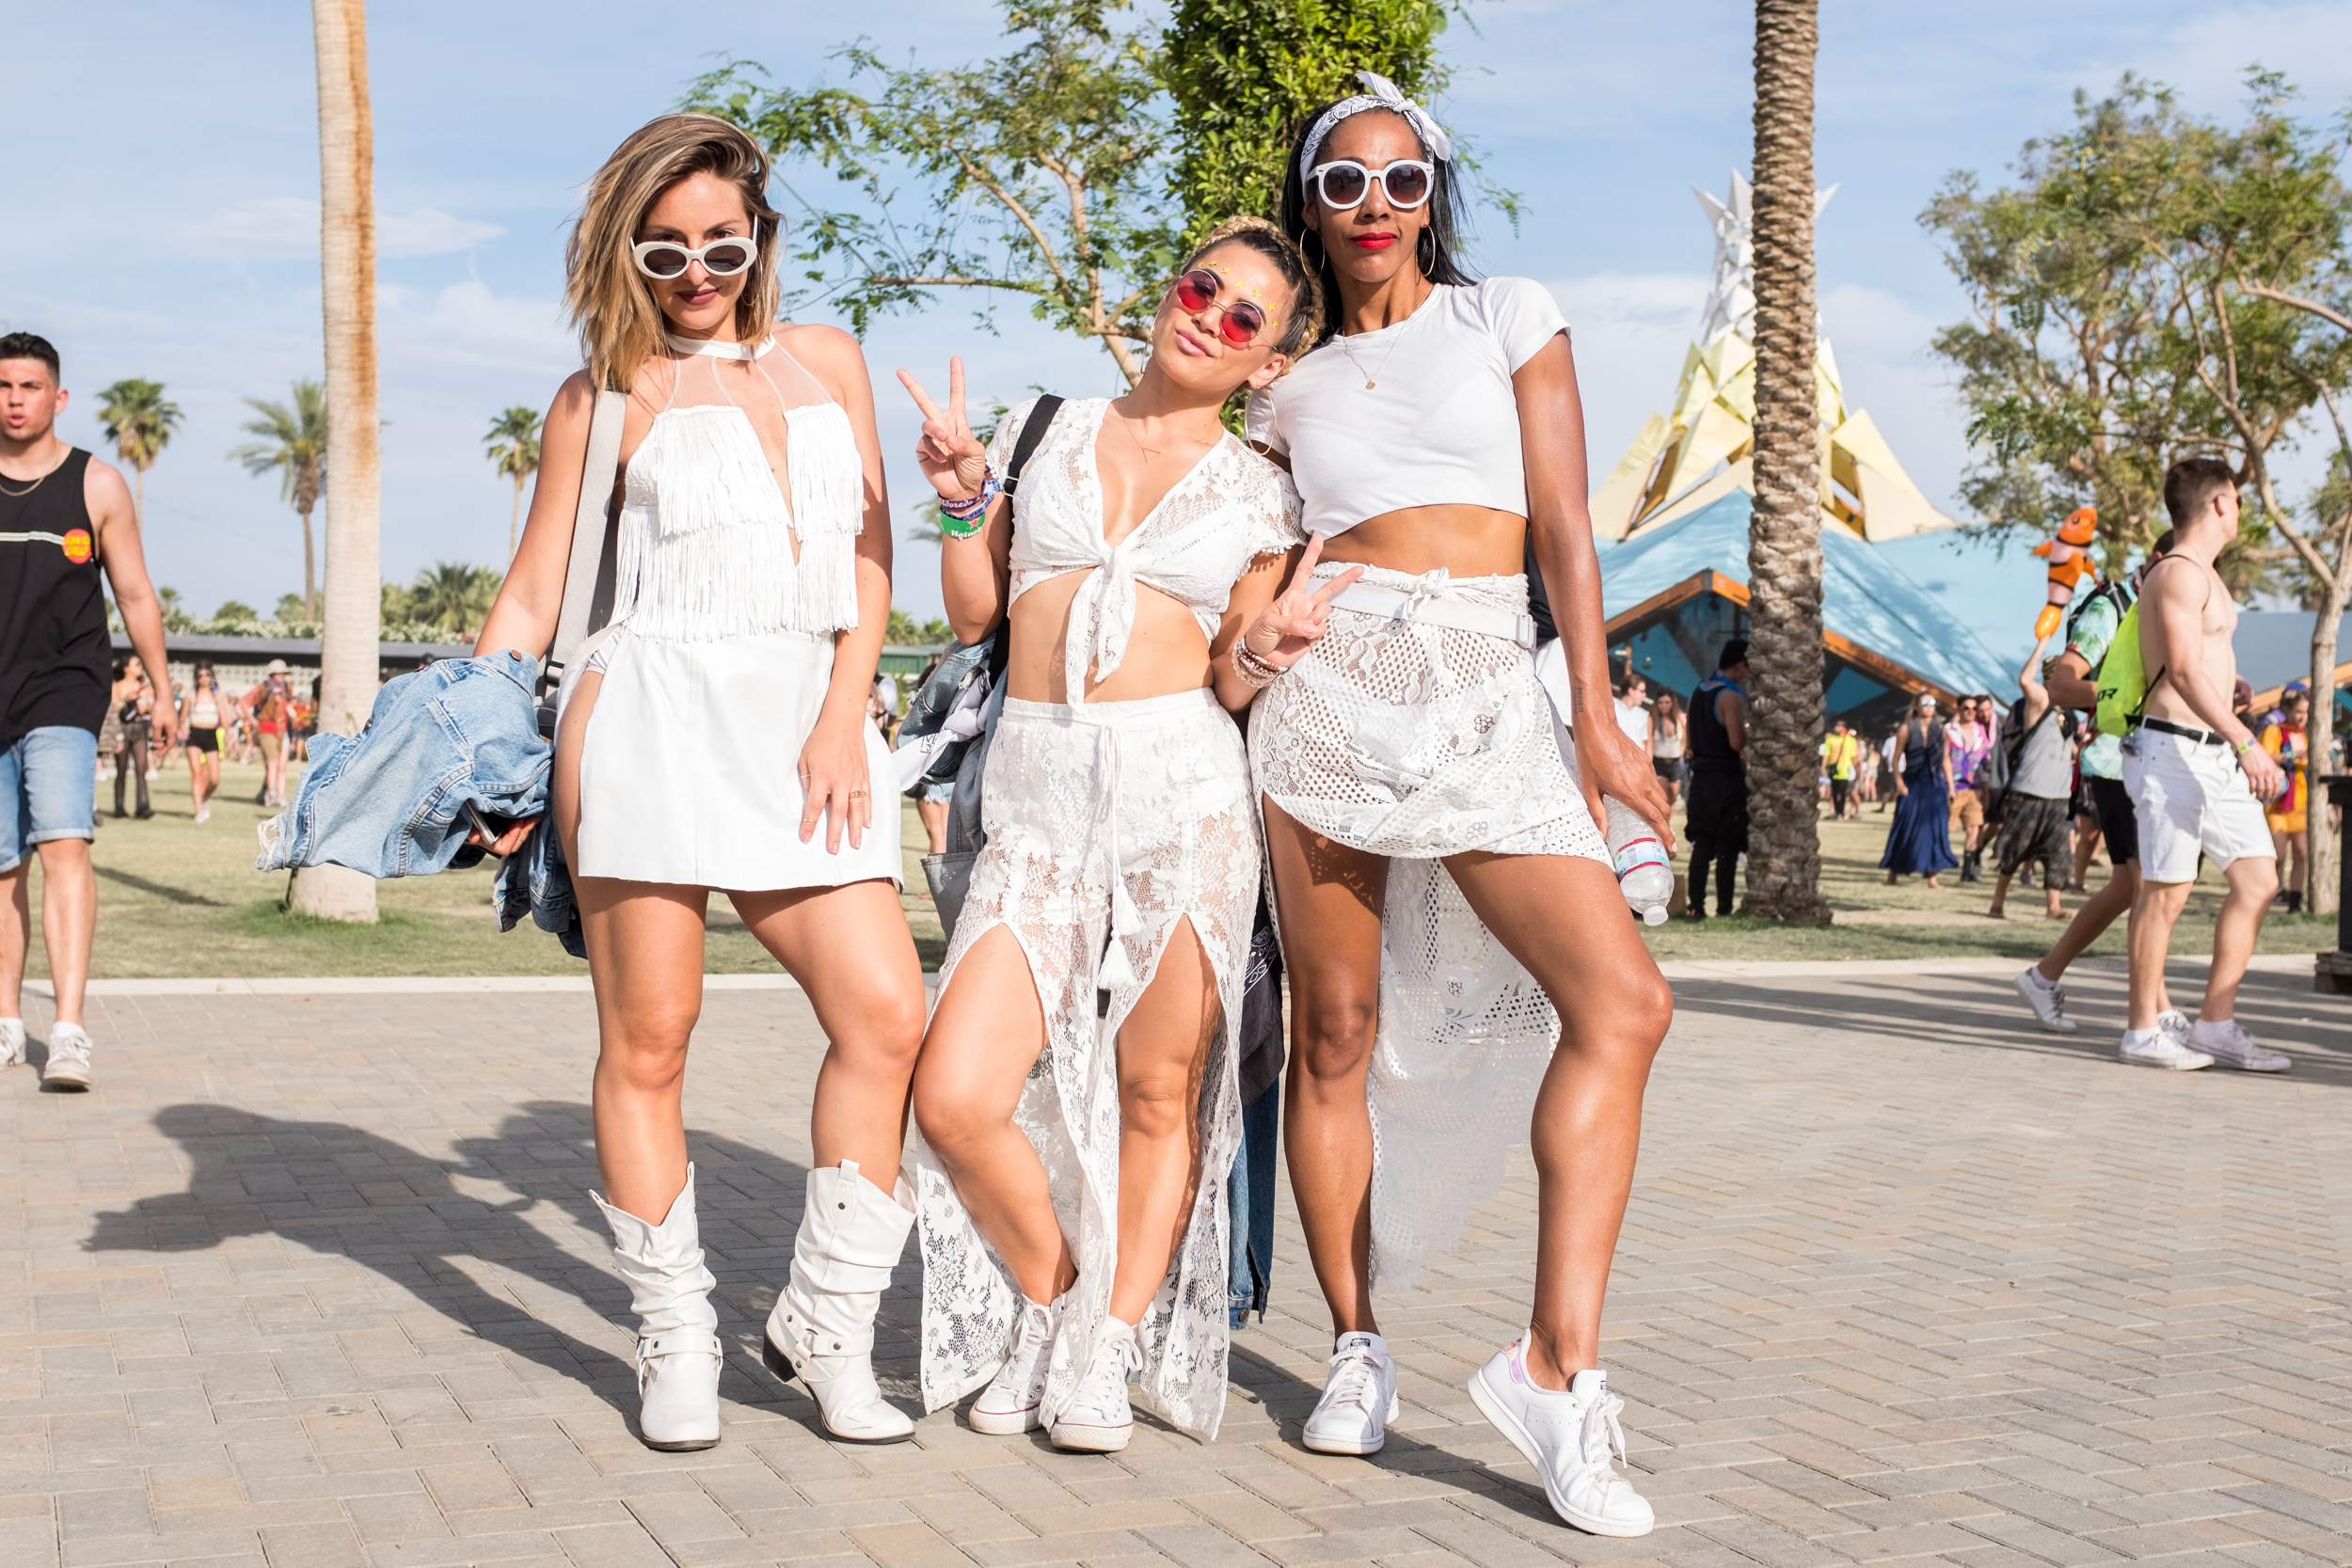 coachella fashion that gave us life and some that raised